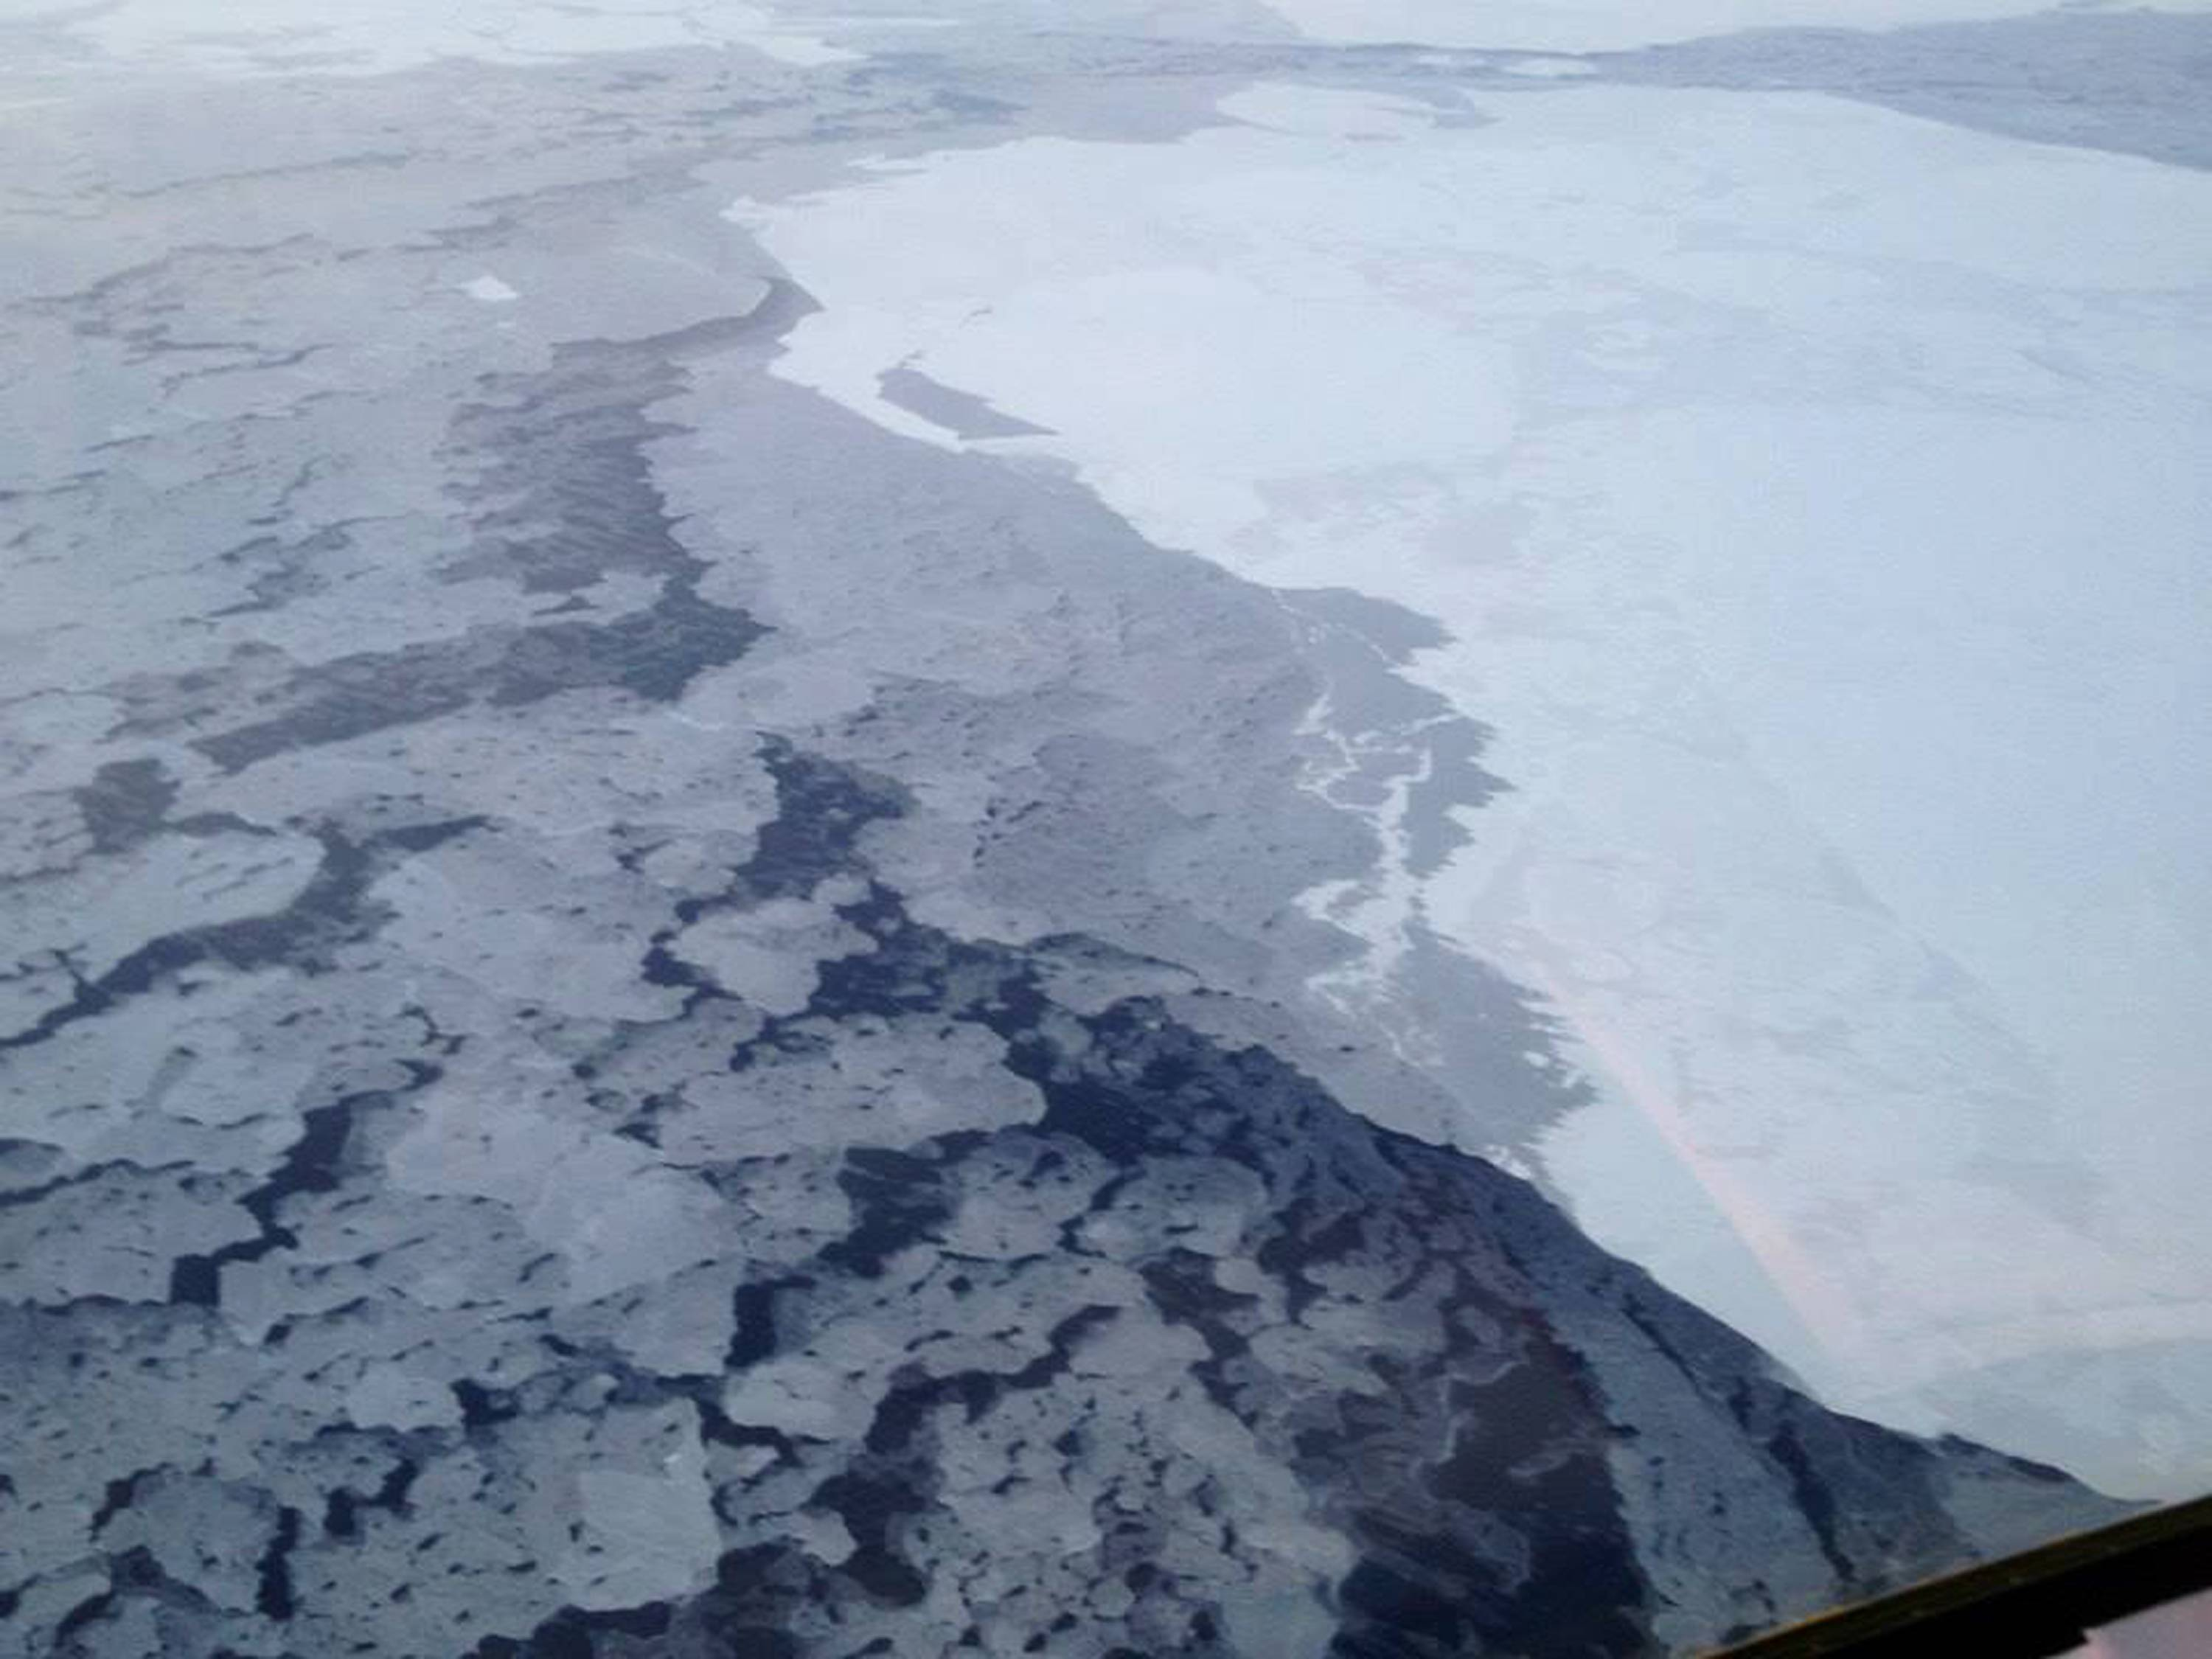 This handout photo provided by The National Oceanic and Atmospheric Administration (NOAA) shows Arctic sea ice in 2013. The Arctic isn't nearly as bright and white as it used to be because of more ice melting in the ocean, and that's turning out to be a global problem, a new study says. With more dark, open water in the summer, less of the sun's heat is reflected back into space. So the entire Earth is absorbing more heat than expected, according to a study published Monday in the Proceedings of the National Academy of Sciences.